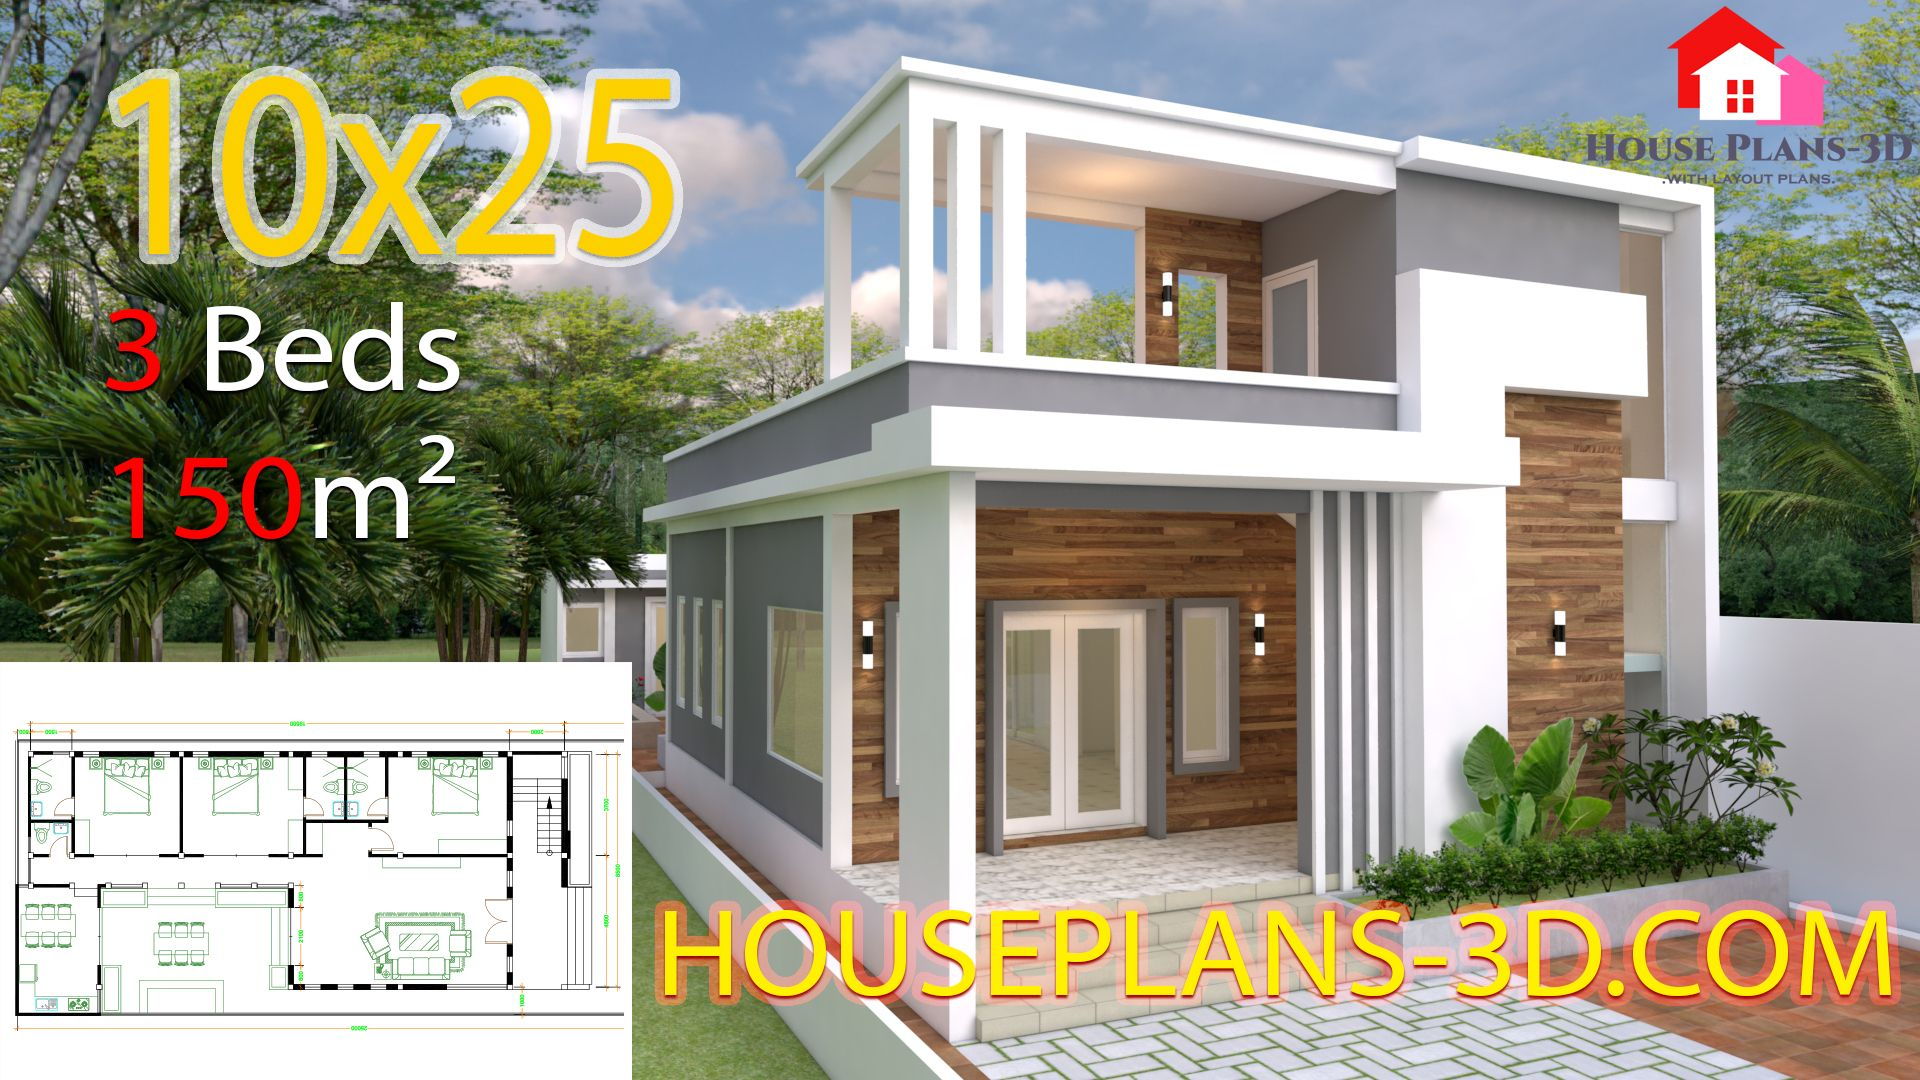 House Design Plans 10x25 With 3 Bedrooms House Plans 3d Small House Design Plans House Plans Home Design Plans